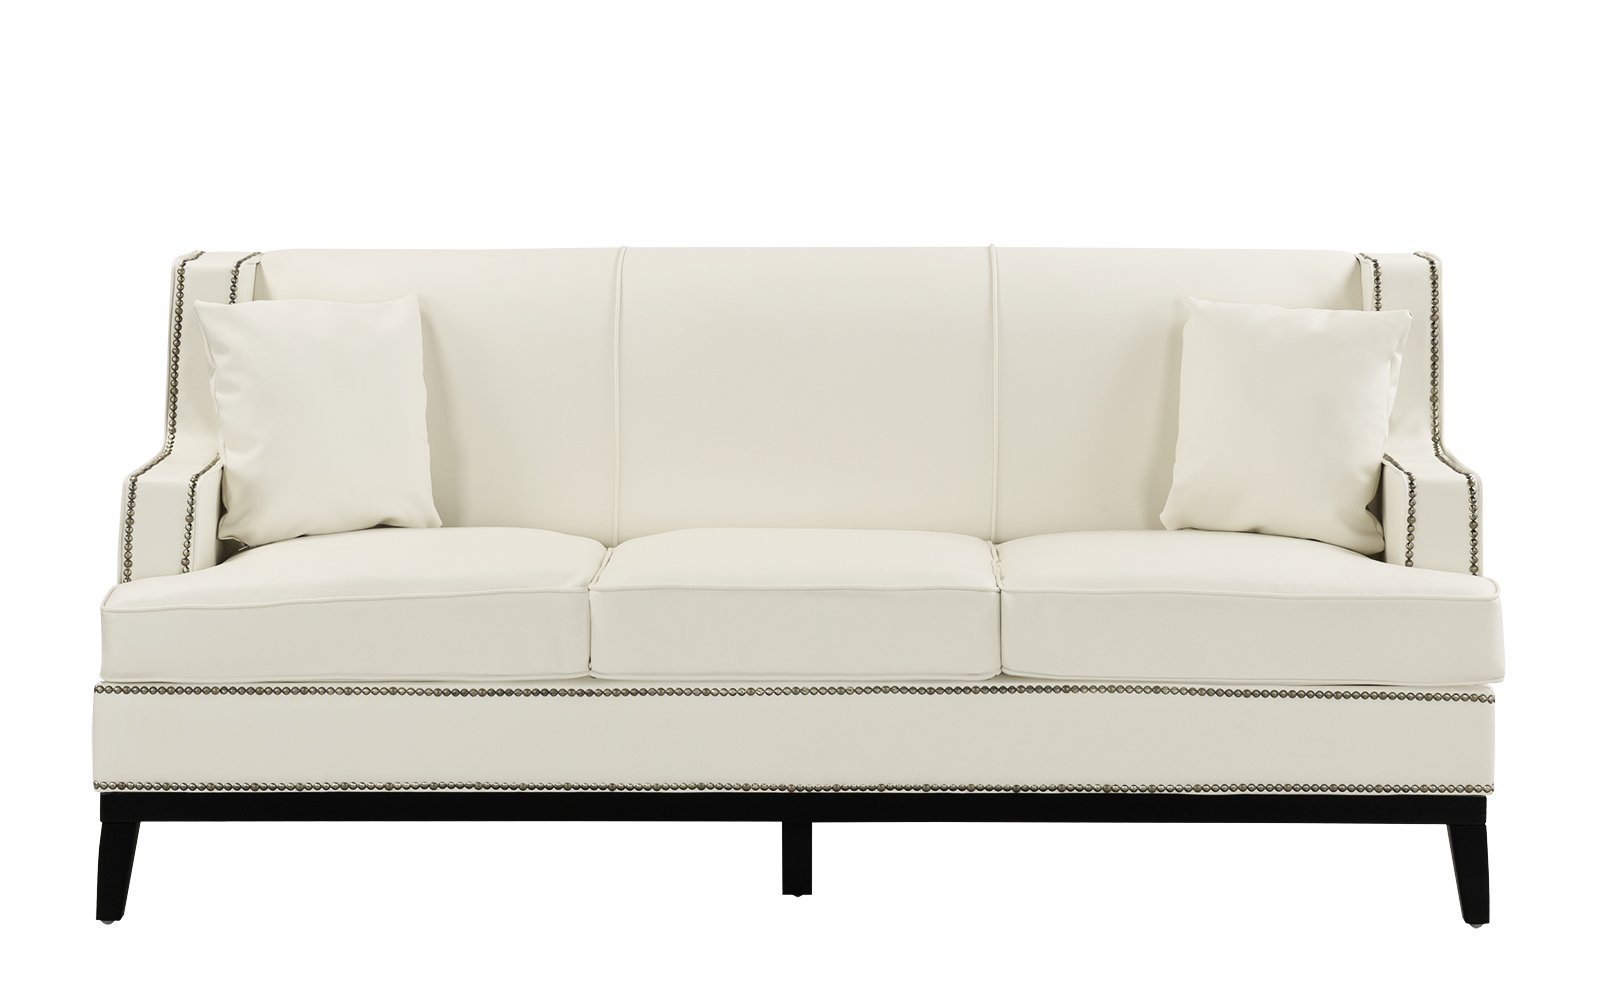 Modern Soft Bonded Leather with Nailhead Trim Details Living Room Sofa in  White